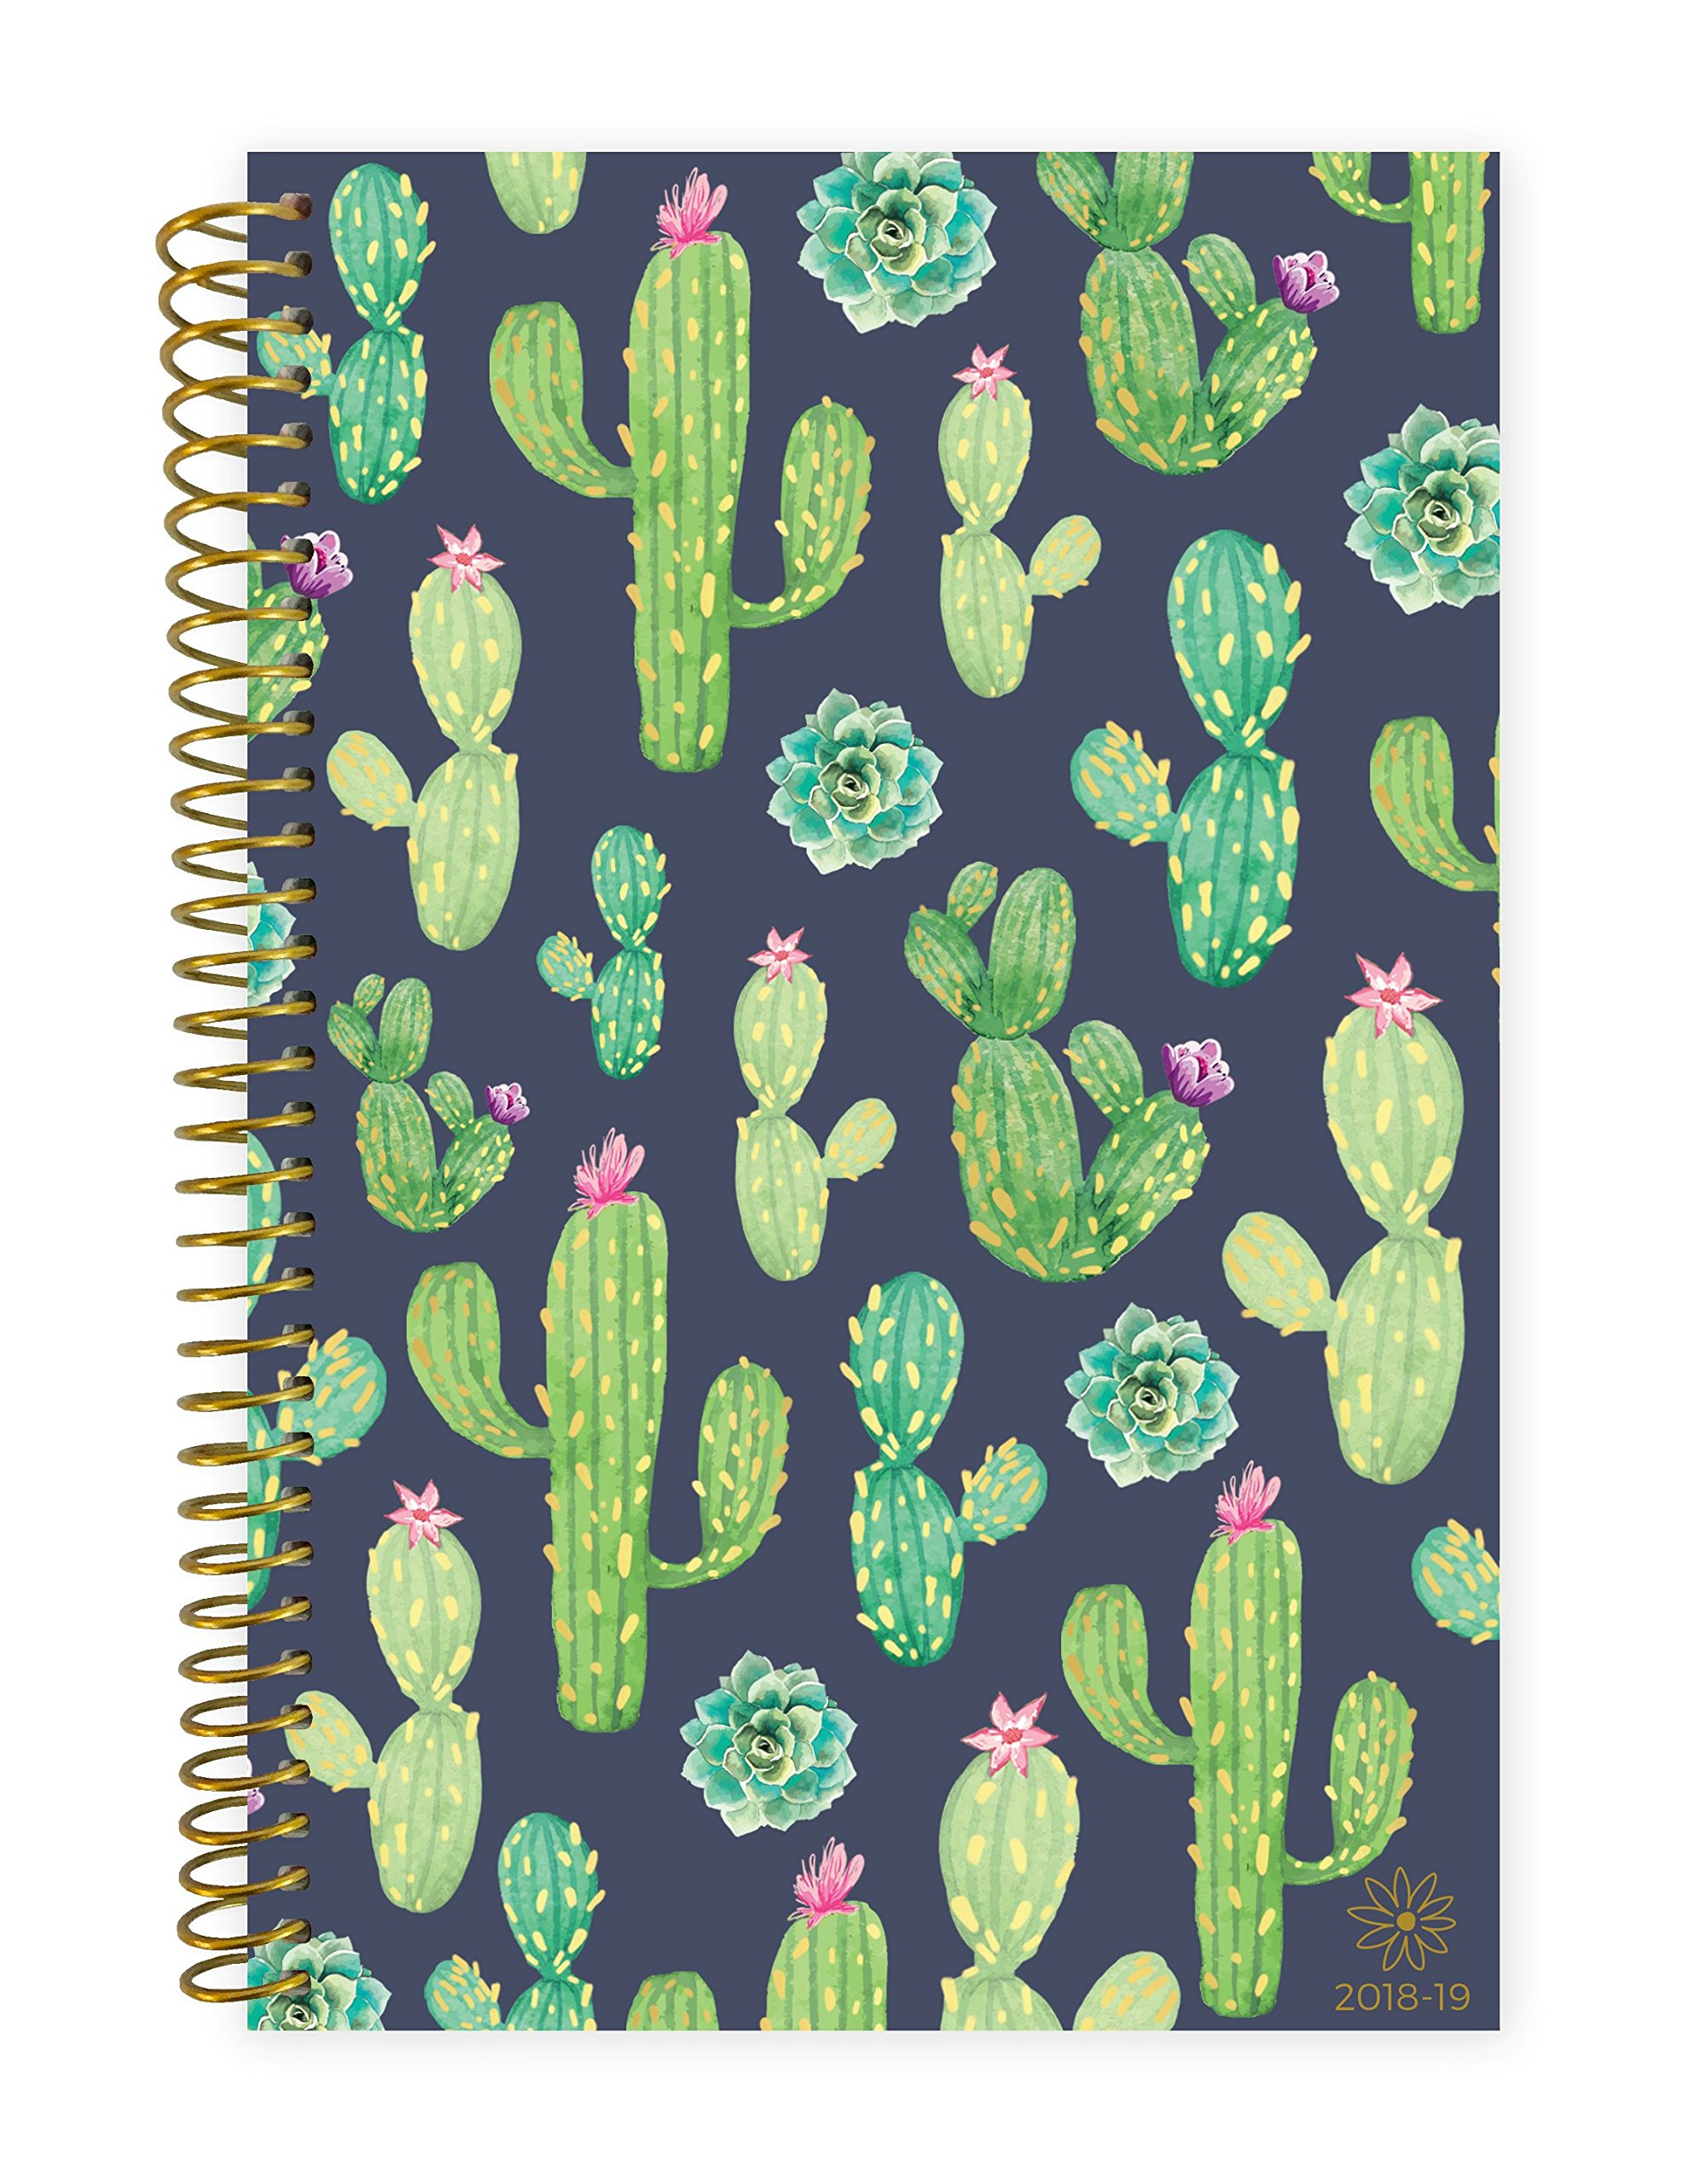 Bloom Daily Planners 2018-2019 Academic Day Planner - Monthly Weekly Datebook/Calendar Book - Inspirational Dated Agenda Organizer - (August 2018 - July 2019) - 6'' x 8.25'' - Navy Cacti